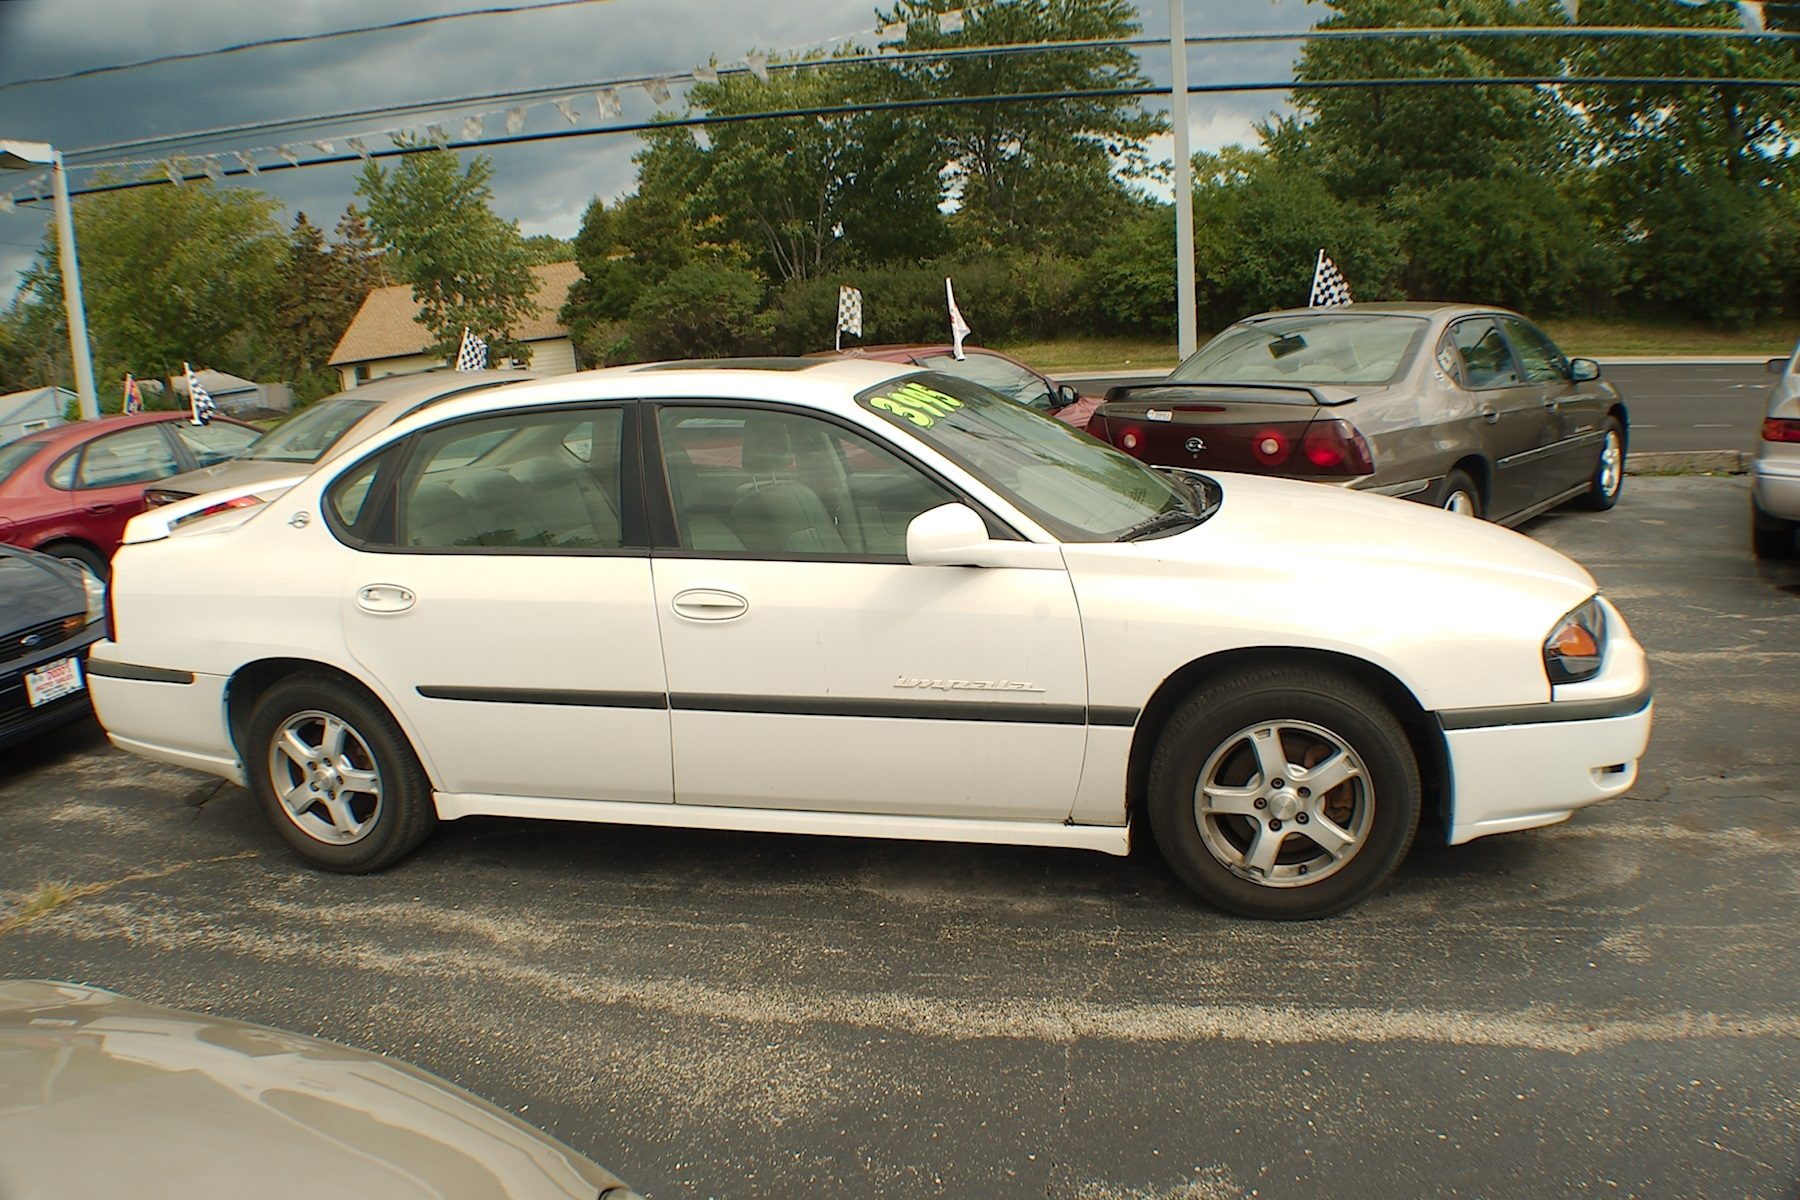 2003 Chevrolet Impala LS White Sedan Sale Antioch Zion Waukegan Lake County Illinois